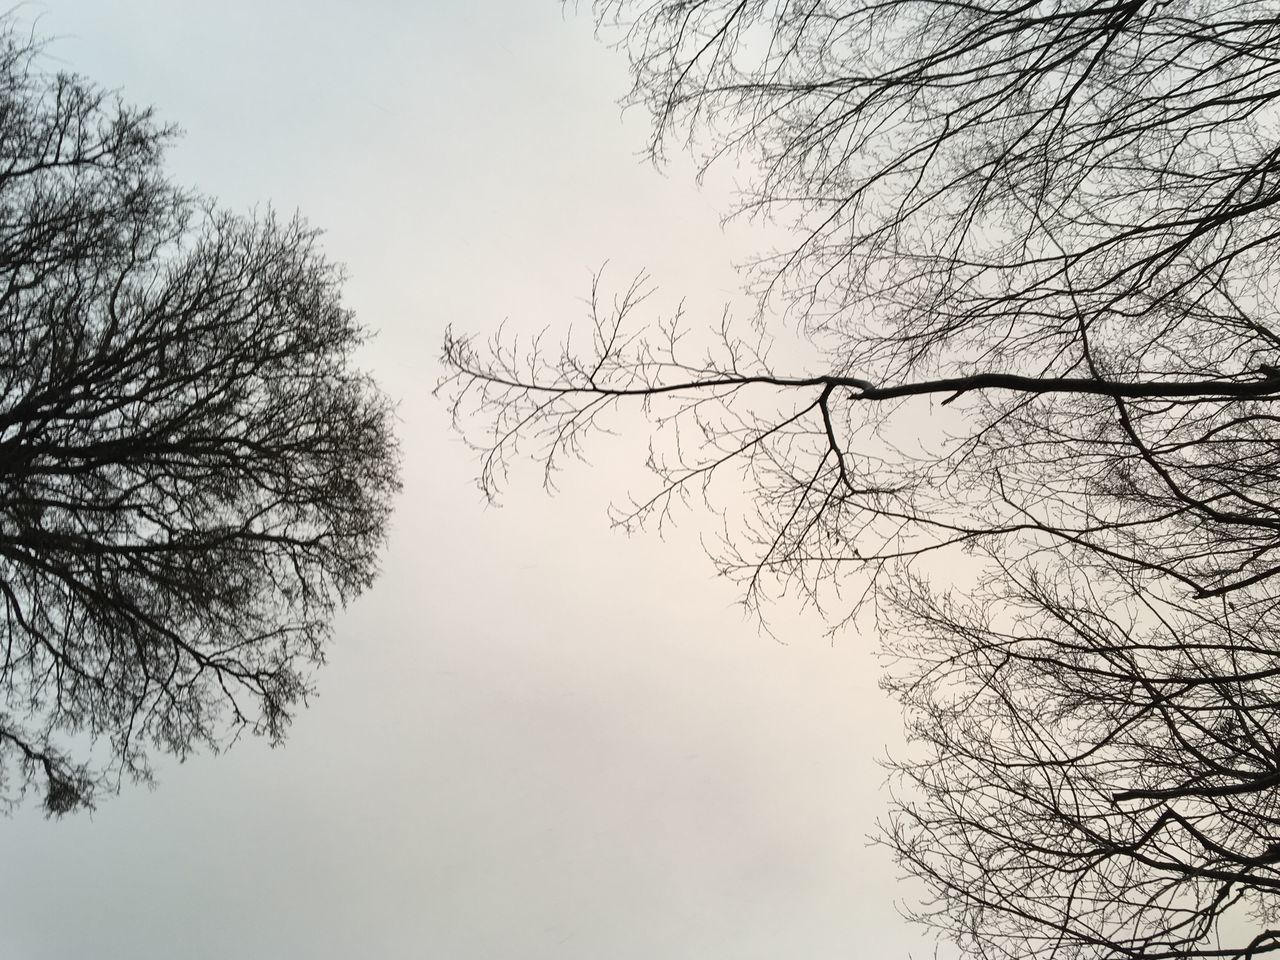 bare tree, tree, branch, nature, beauty in nature, low angle view, sky, no people, outdoors, tranquility, day, clear sky, scenics